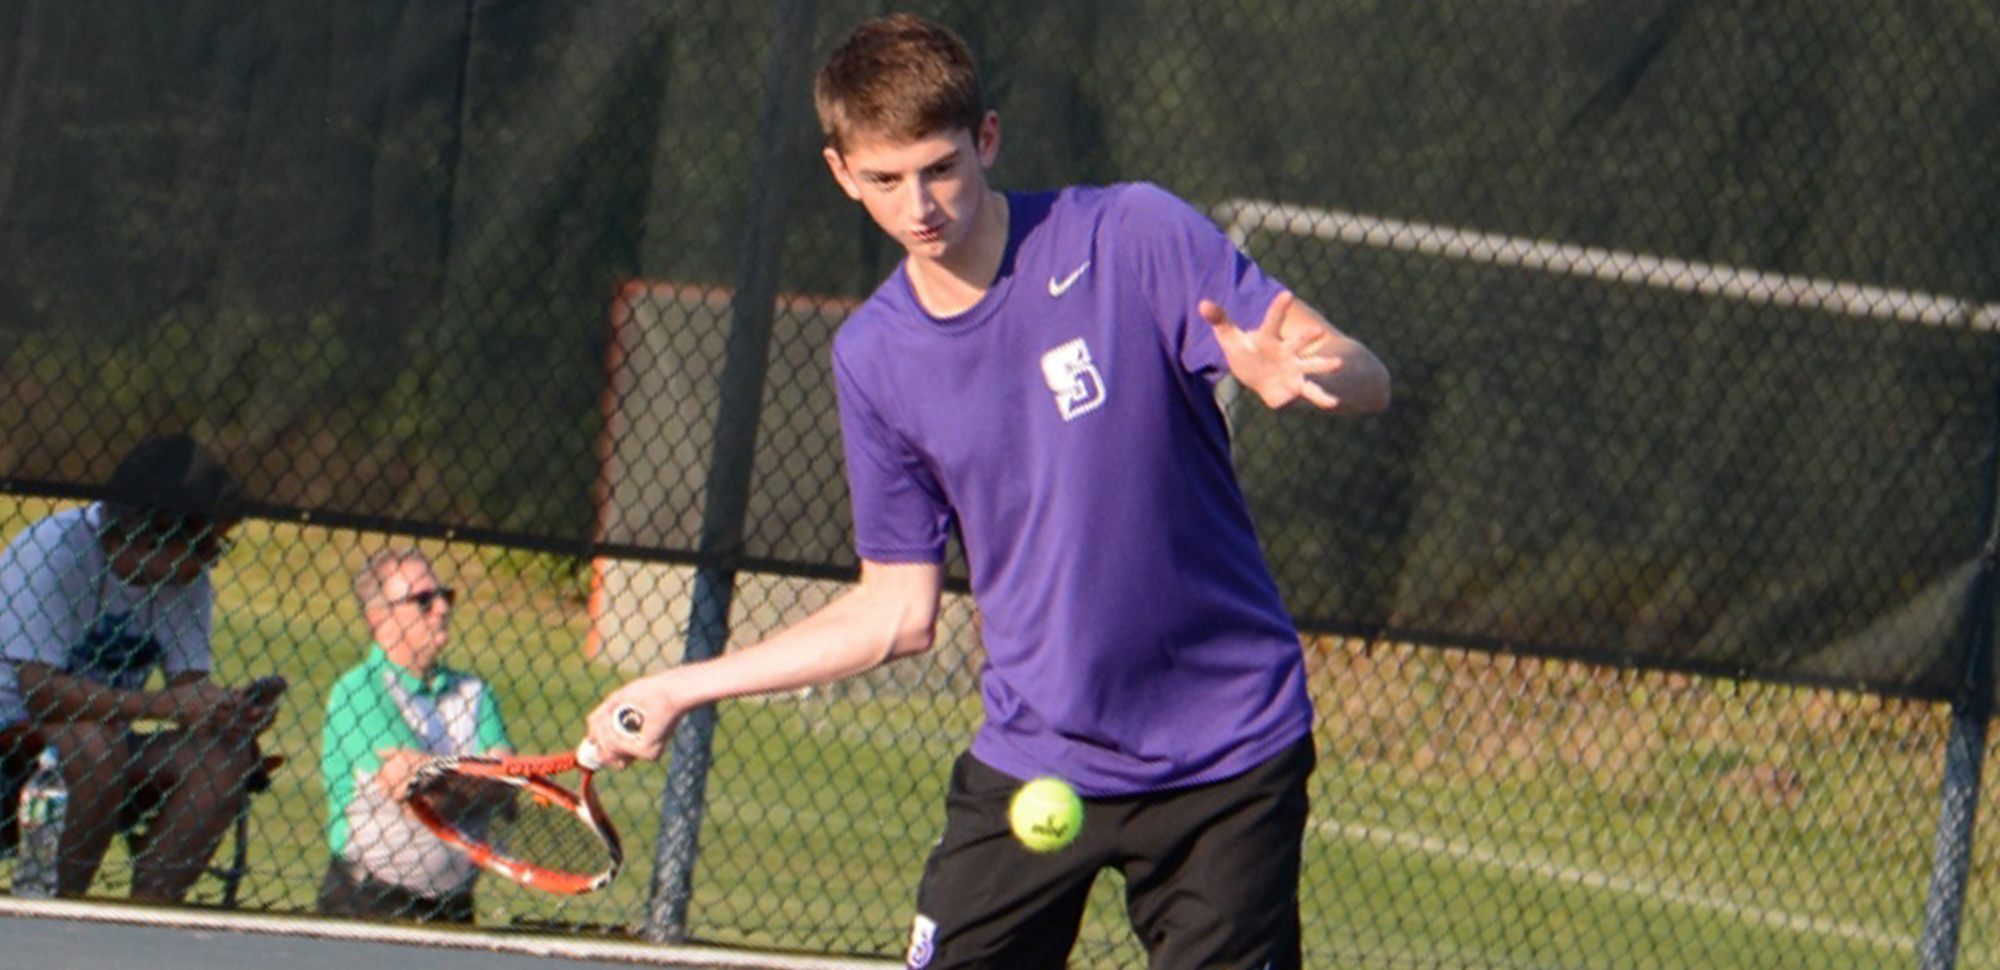 Brian Harkins clinched Scranton's win over Colby-Sawyer on Tuesday with a win at #5 singles.